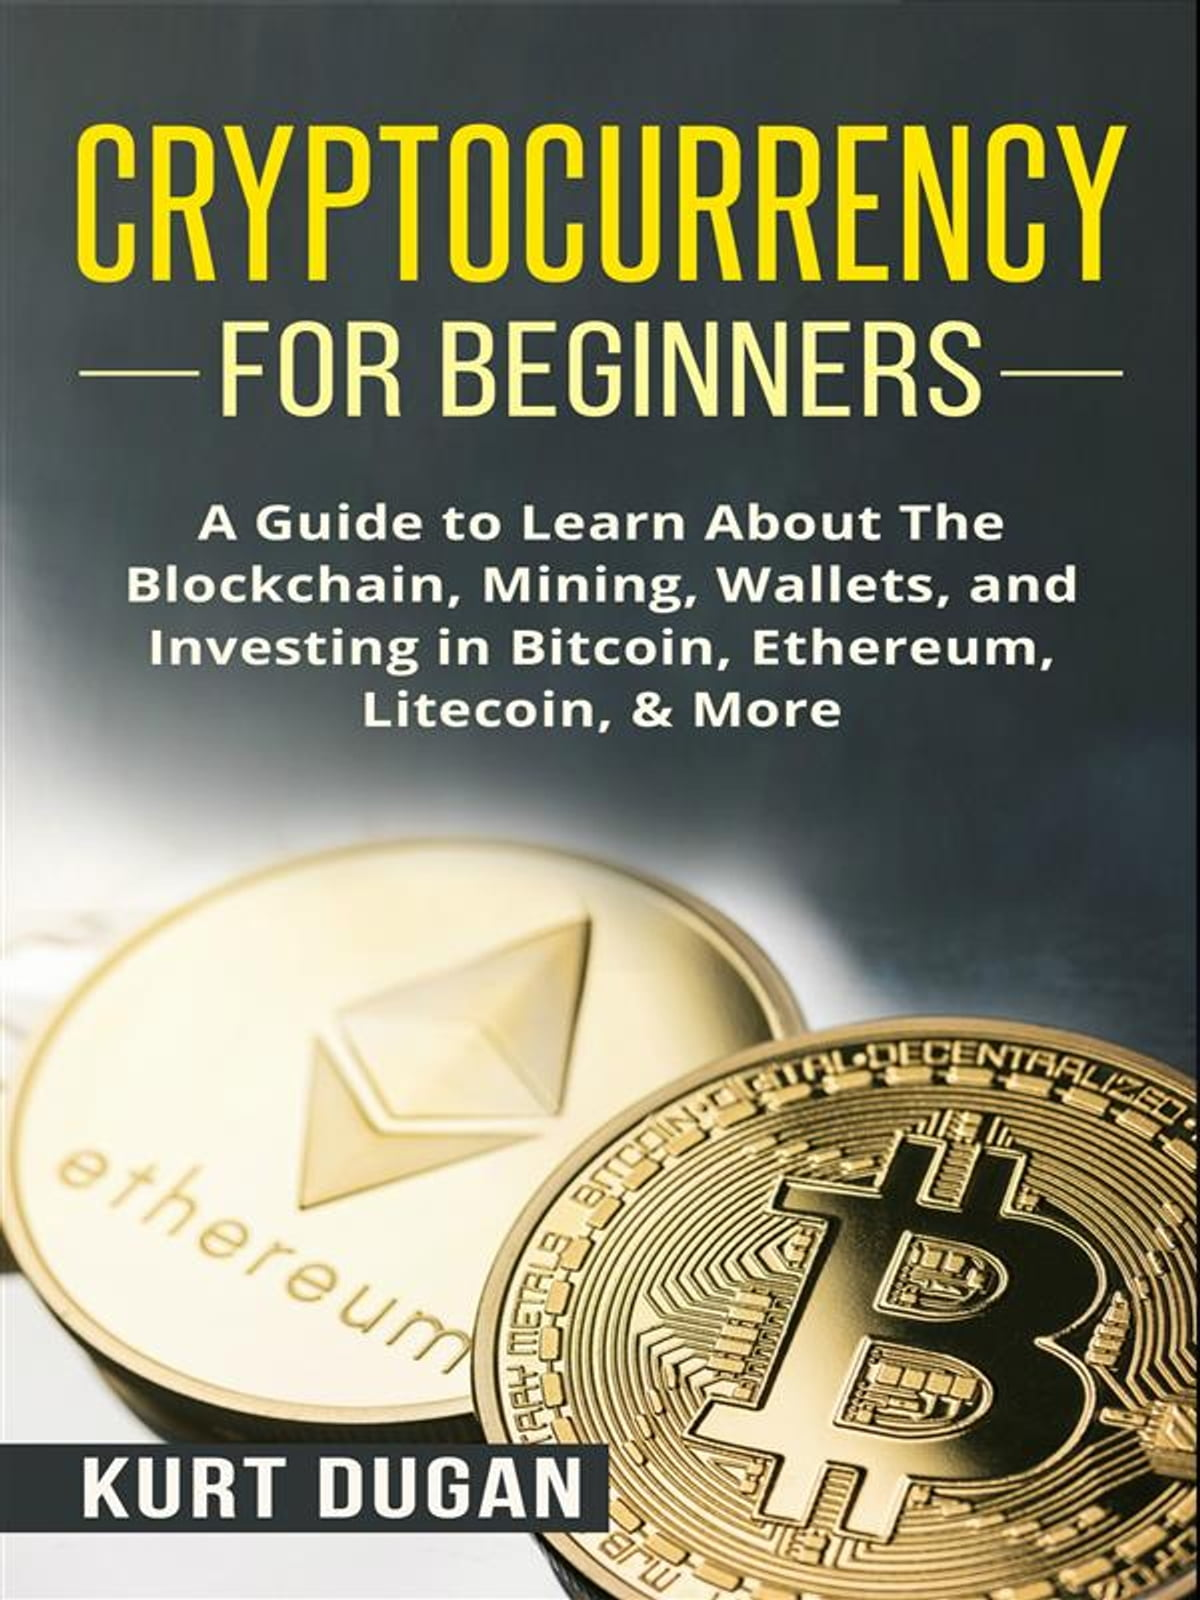 Inside bitcoins the future of virtual currency starter how to bet on spread basketball